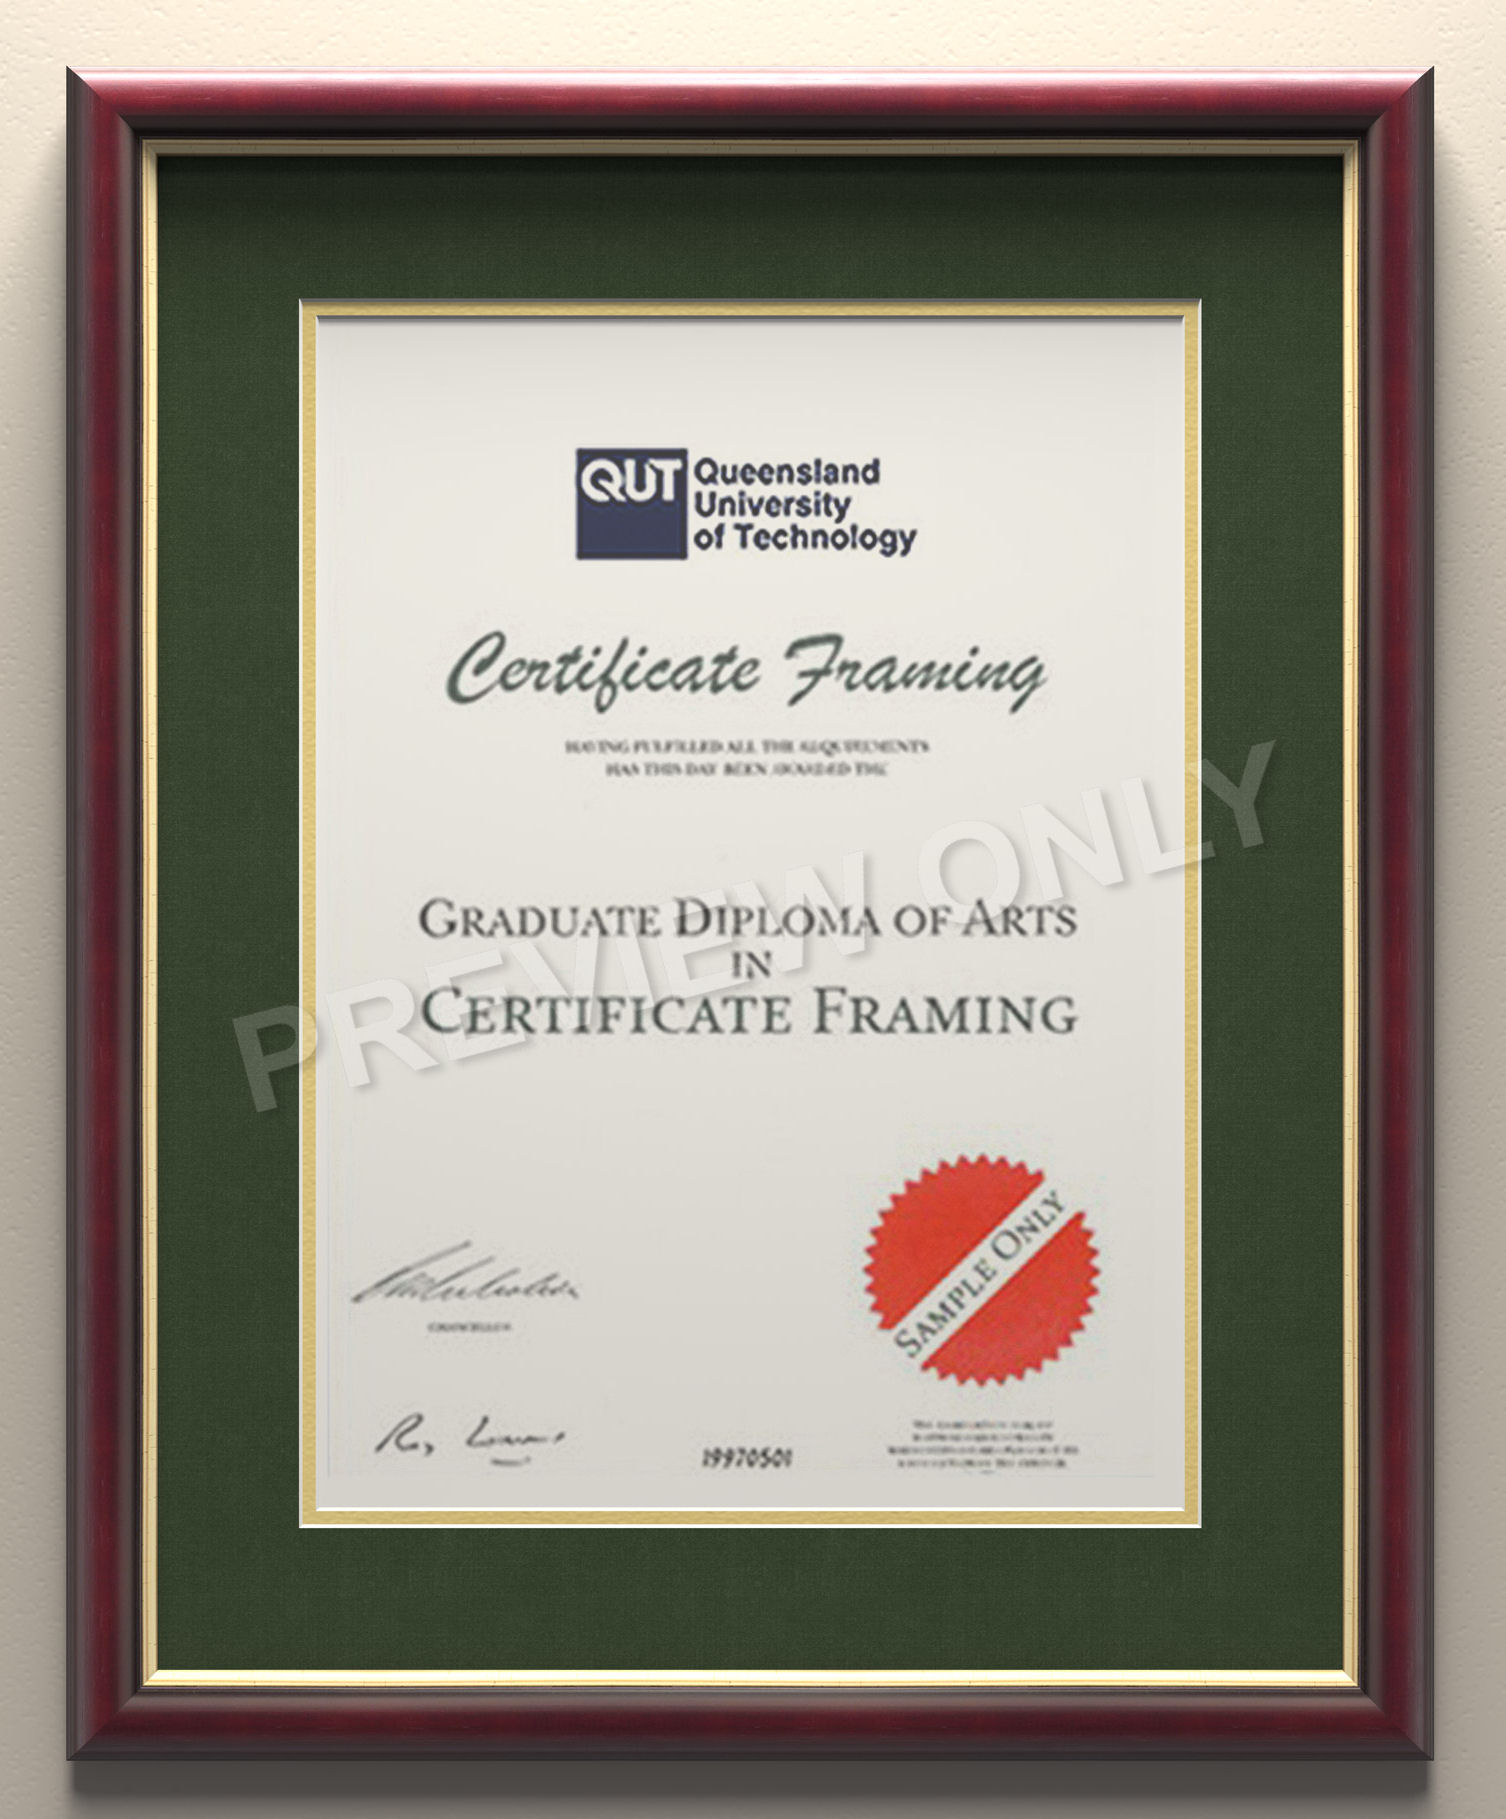 University Degree Certificate Frames For A Graduation Certifica